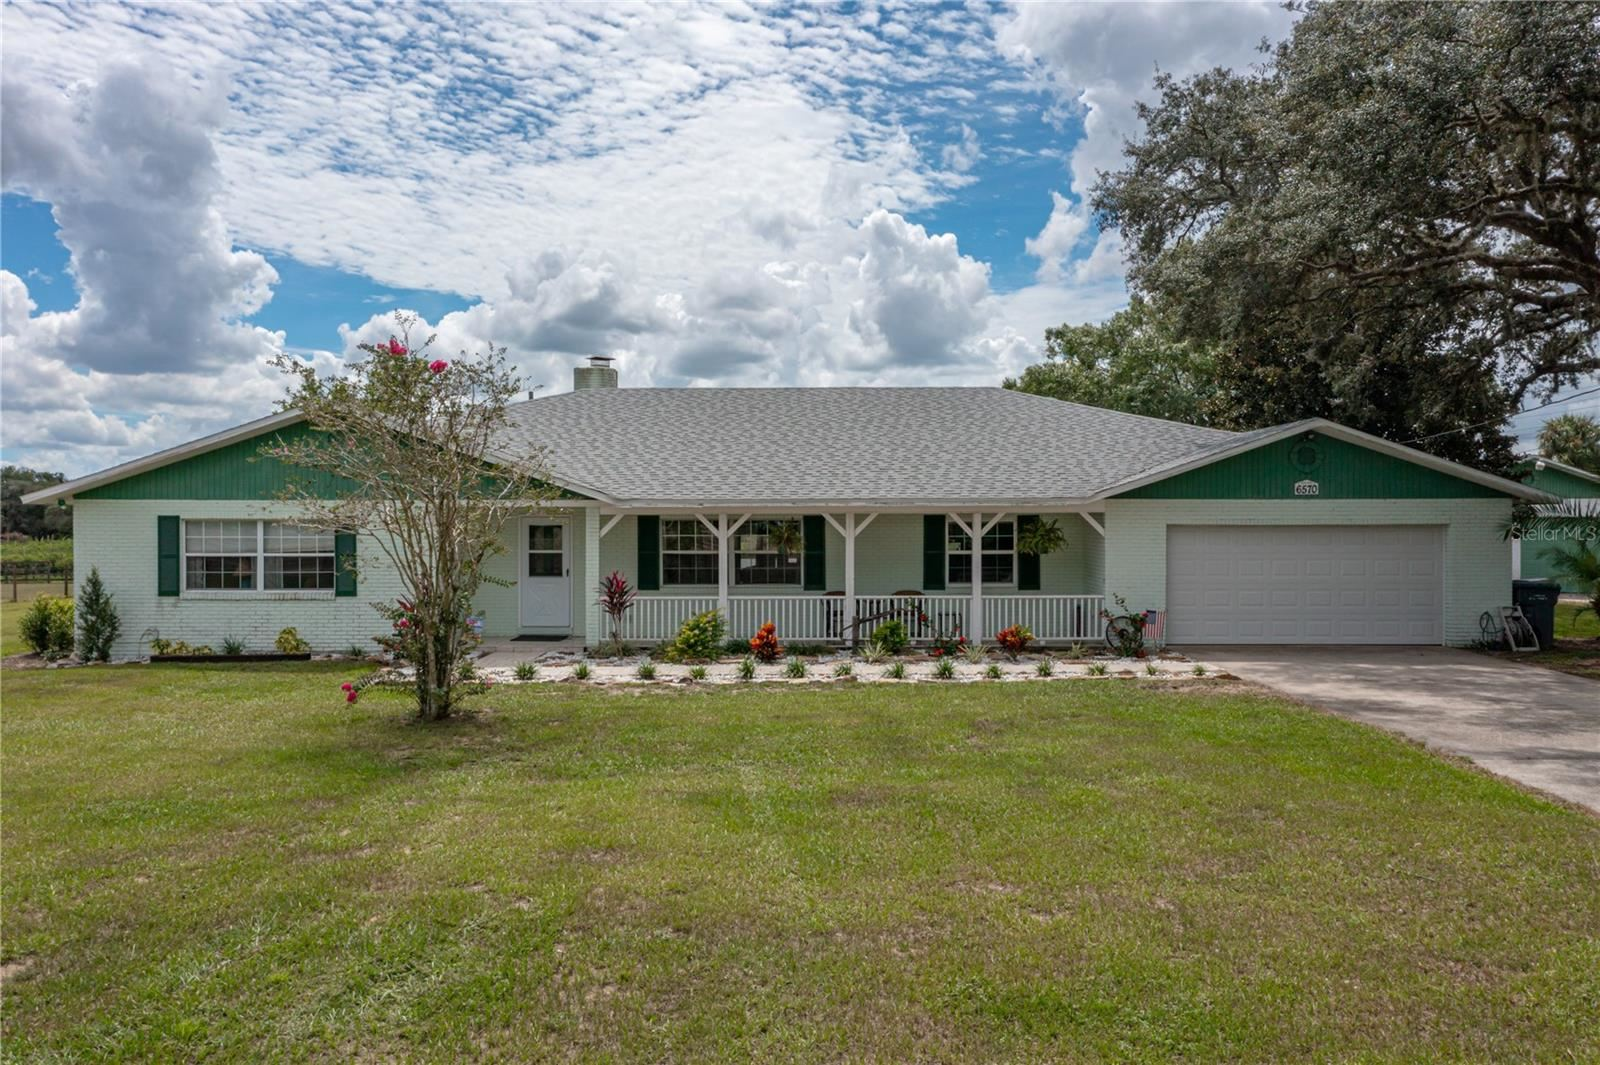 Photo of 6570 WATER TANK ROAD E, HAINES CITY, FL 33844 (MLS # L4925341)